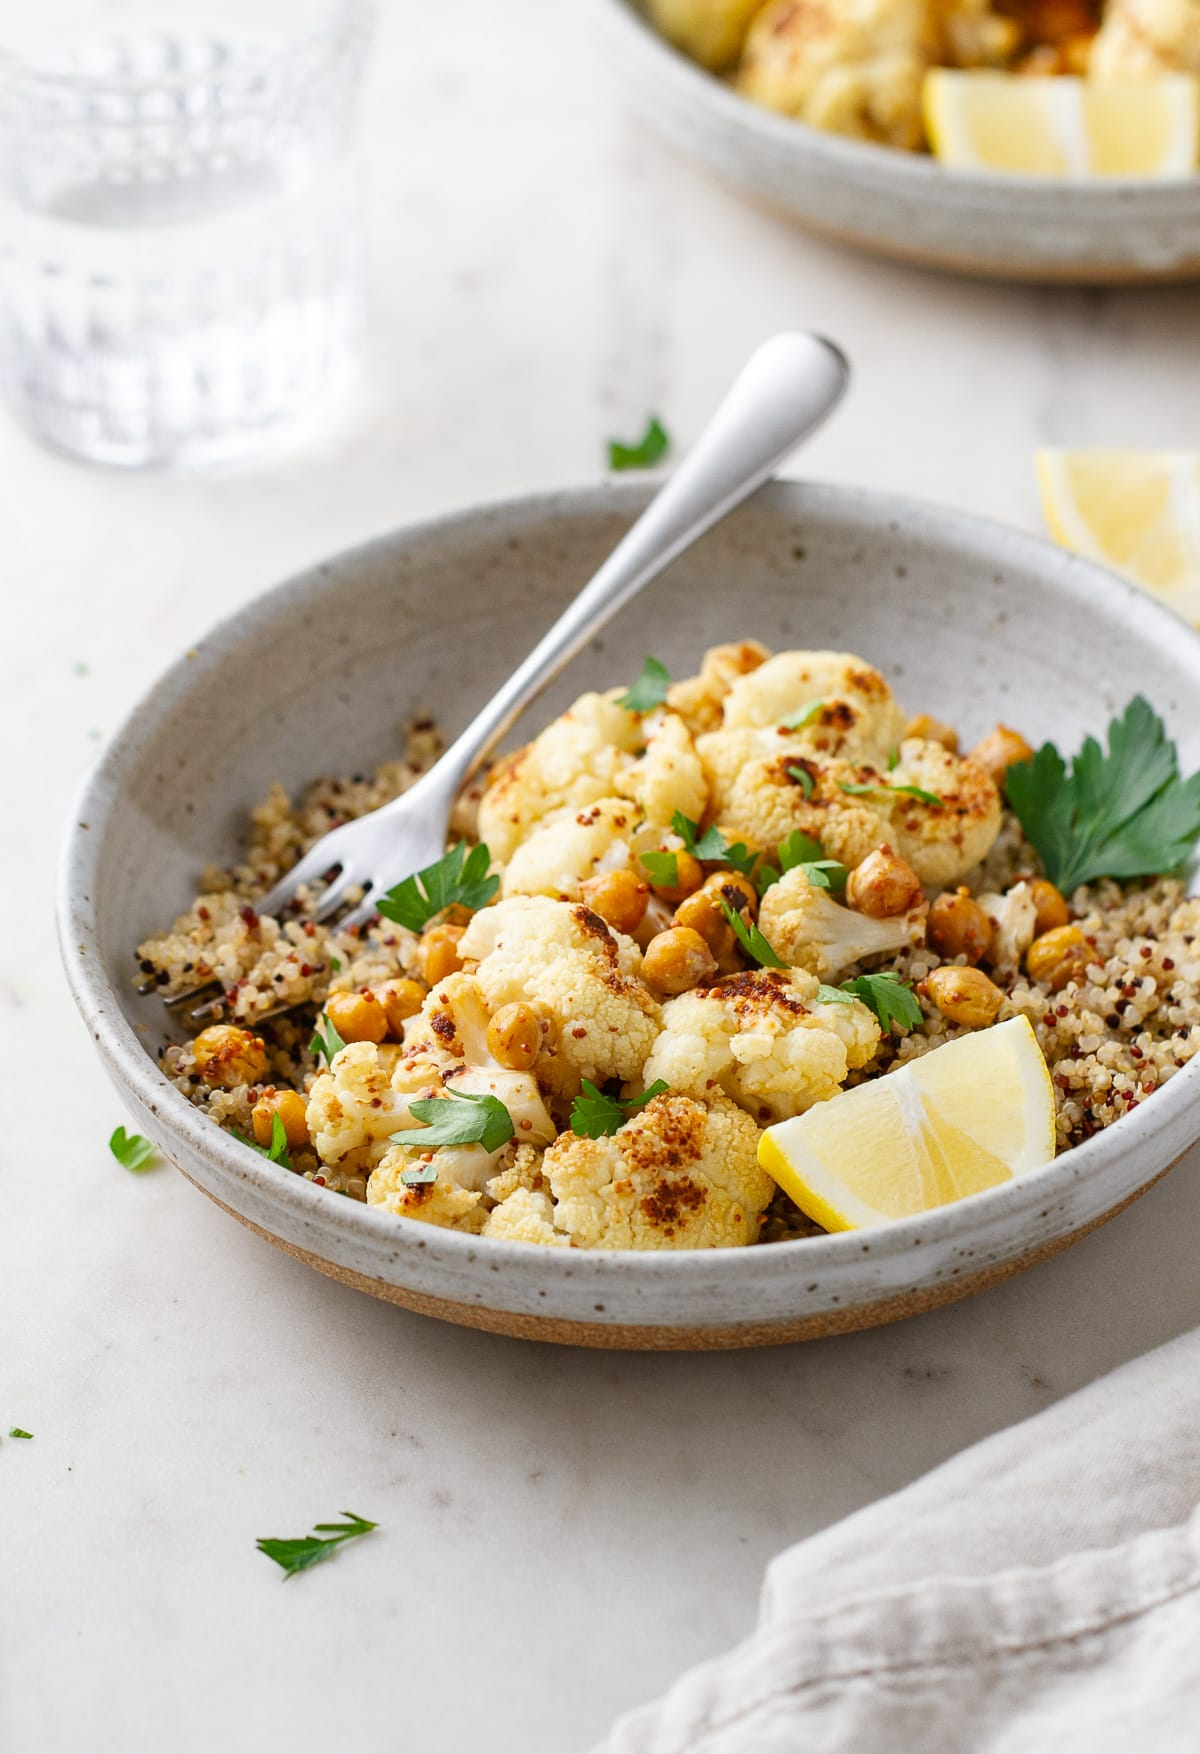 side angle view of a bowl with a serving of quinoa, roasted cauliflower with mustard dressing and chickpeas.